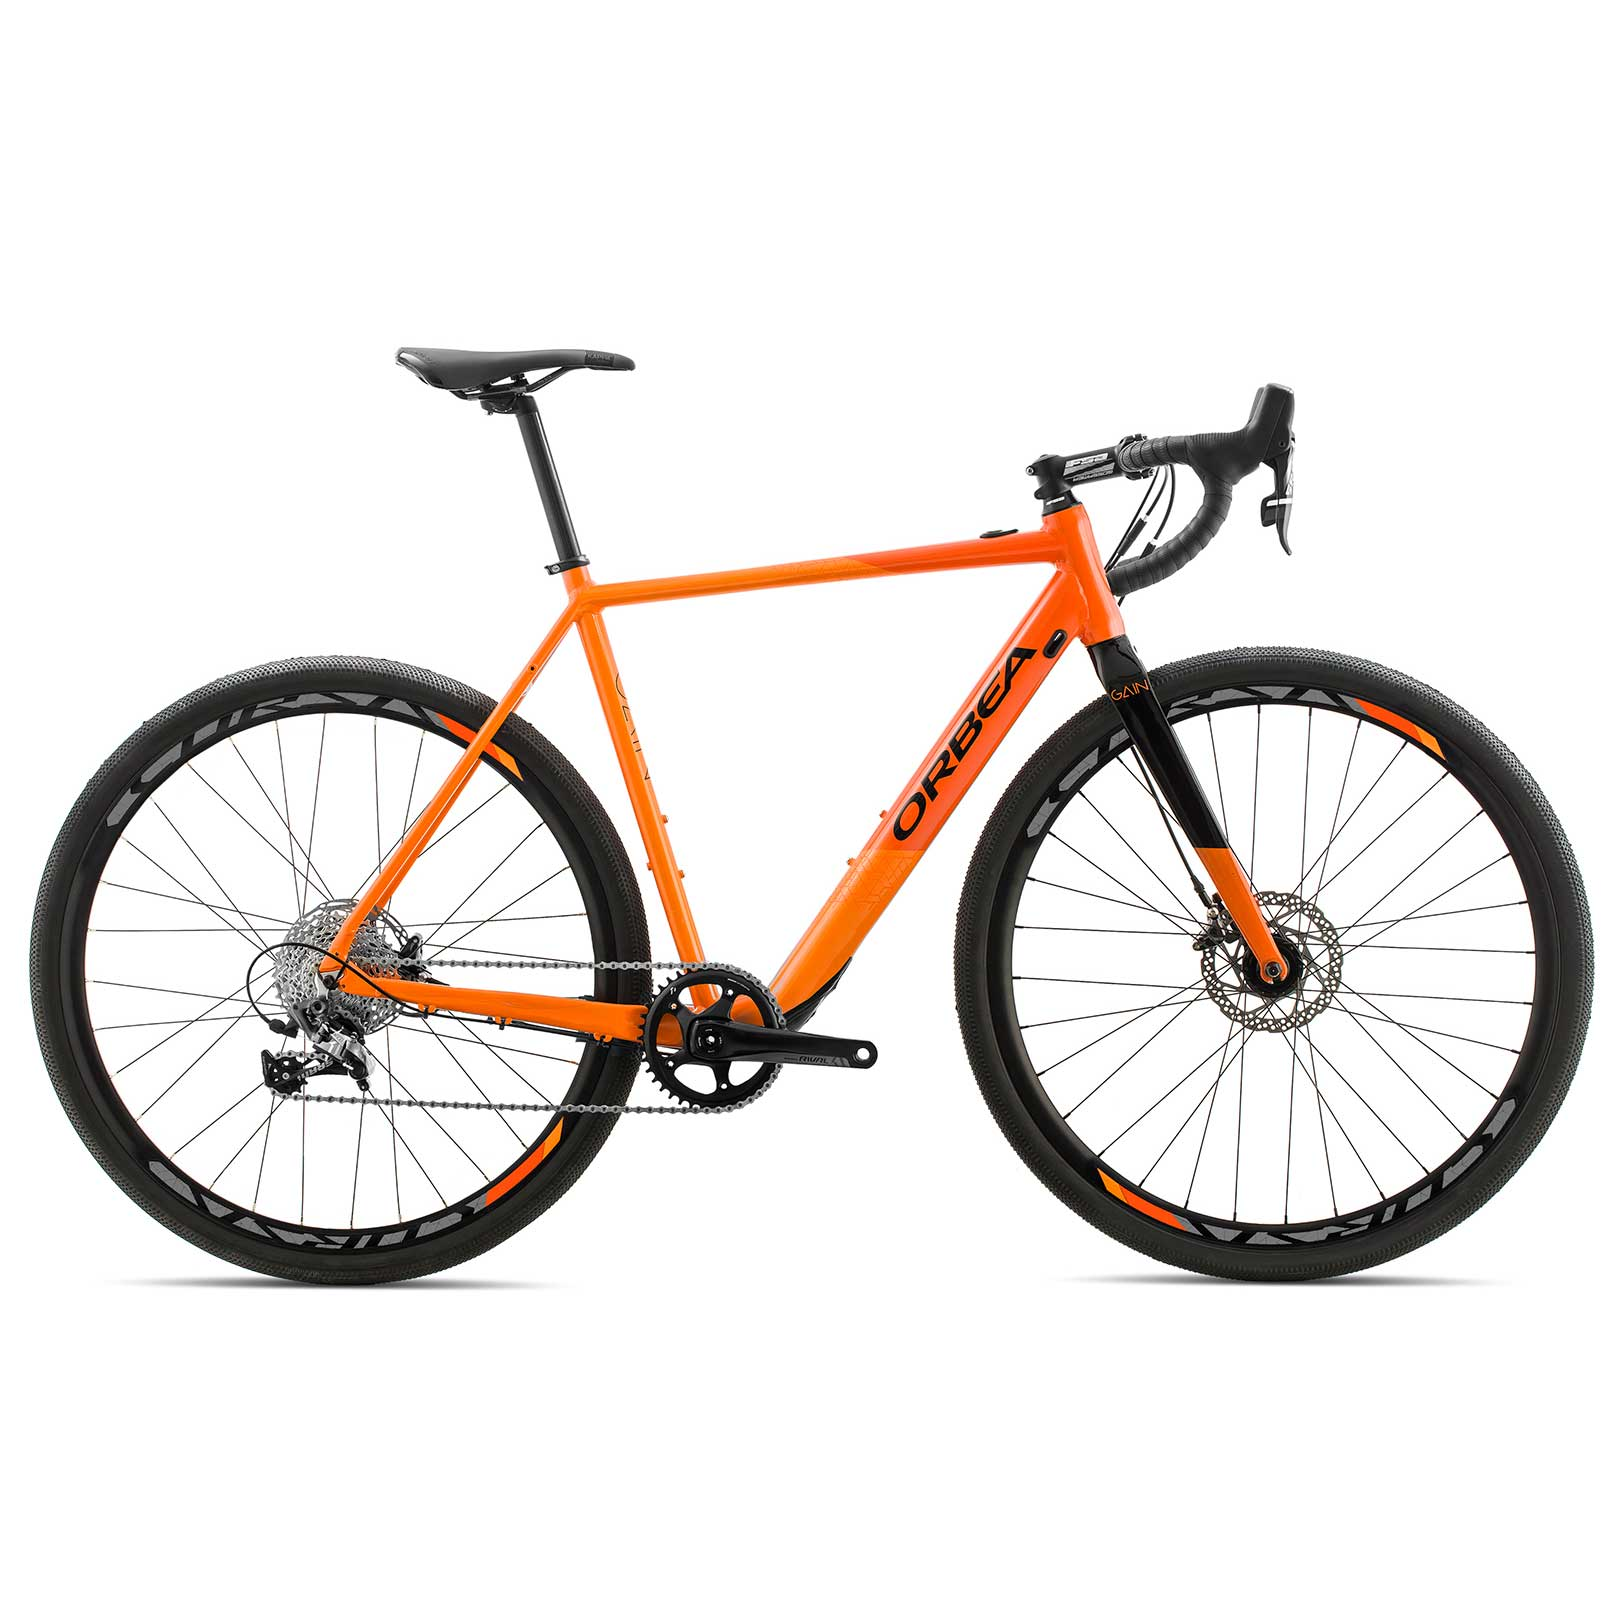 ccbb9f75d05 Orbea Gain D21 Gravel E-Bike – all3sports